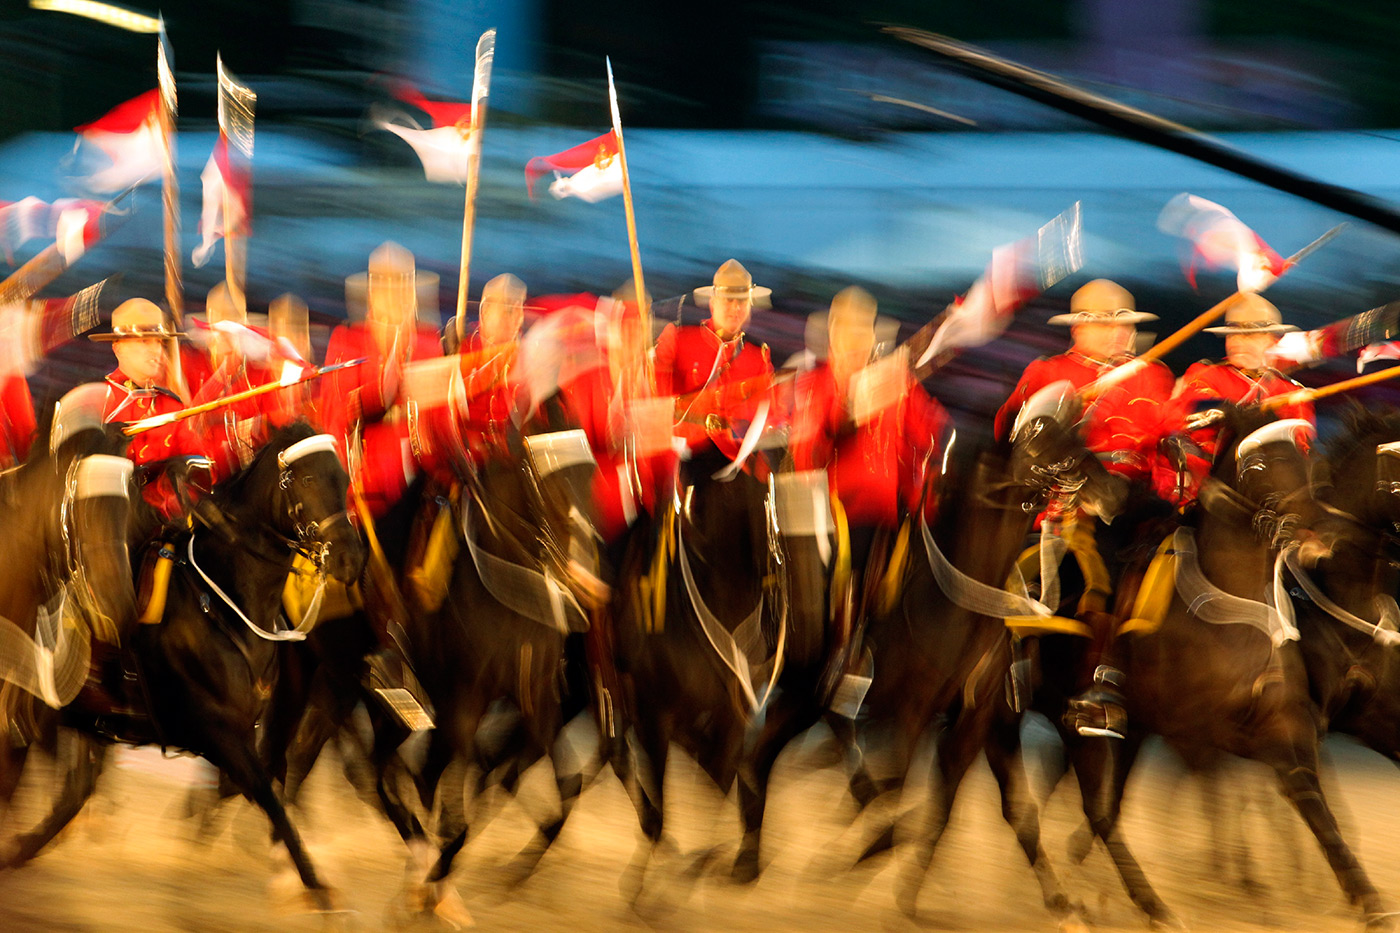 <p>Canadian Mounties at the Queen's Diamond Jubilee pageant at Royal Windsor Horse Show.</p>